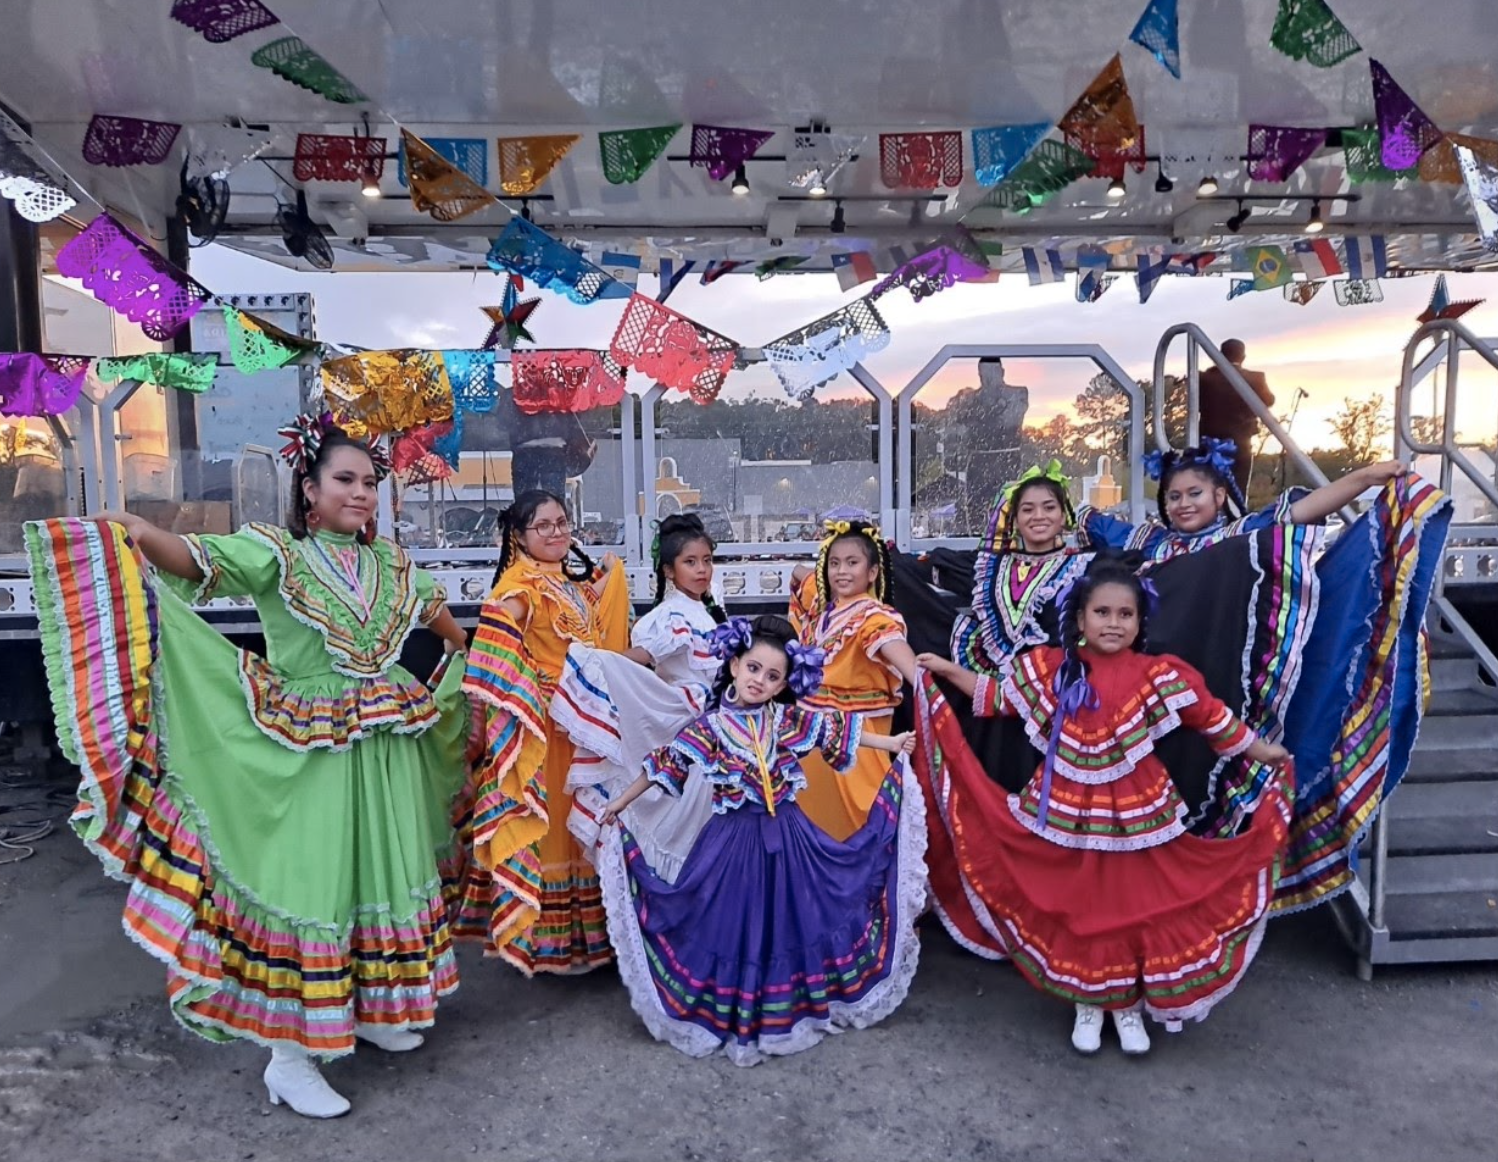 The folkloric dance team poses for a picture at a Hispanic Heritage event in Southwest Little Rock.